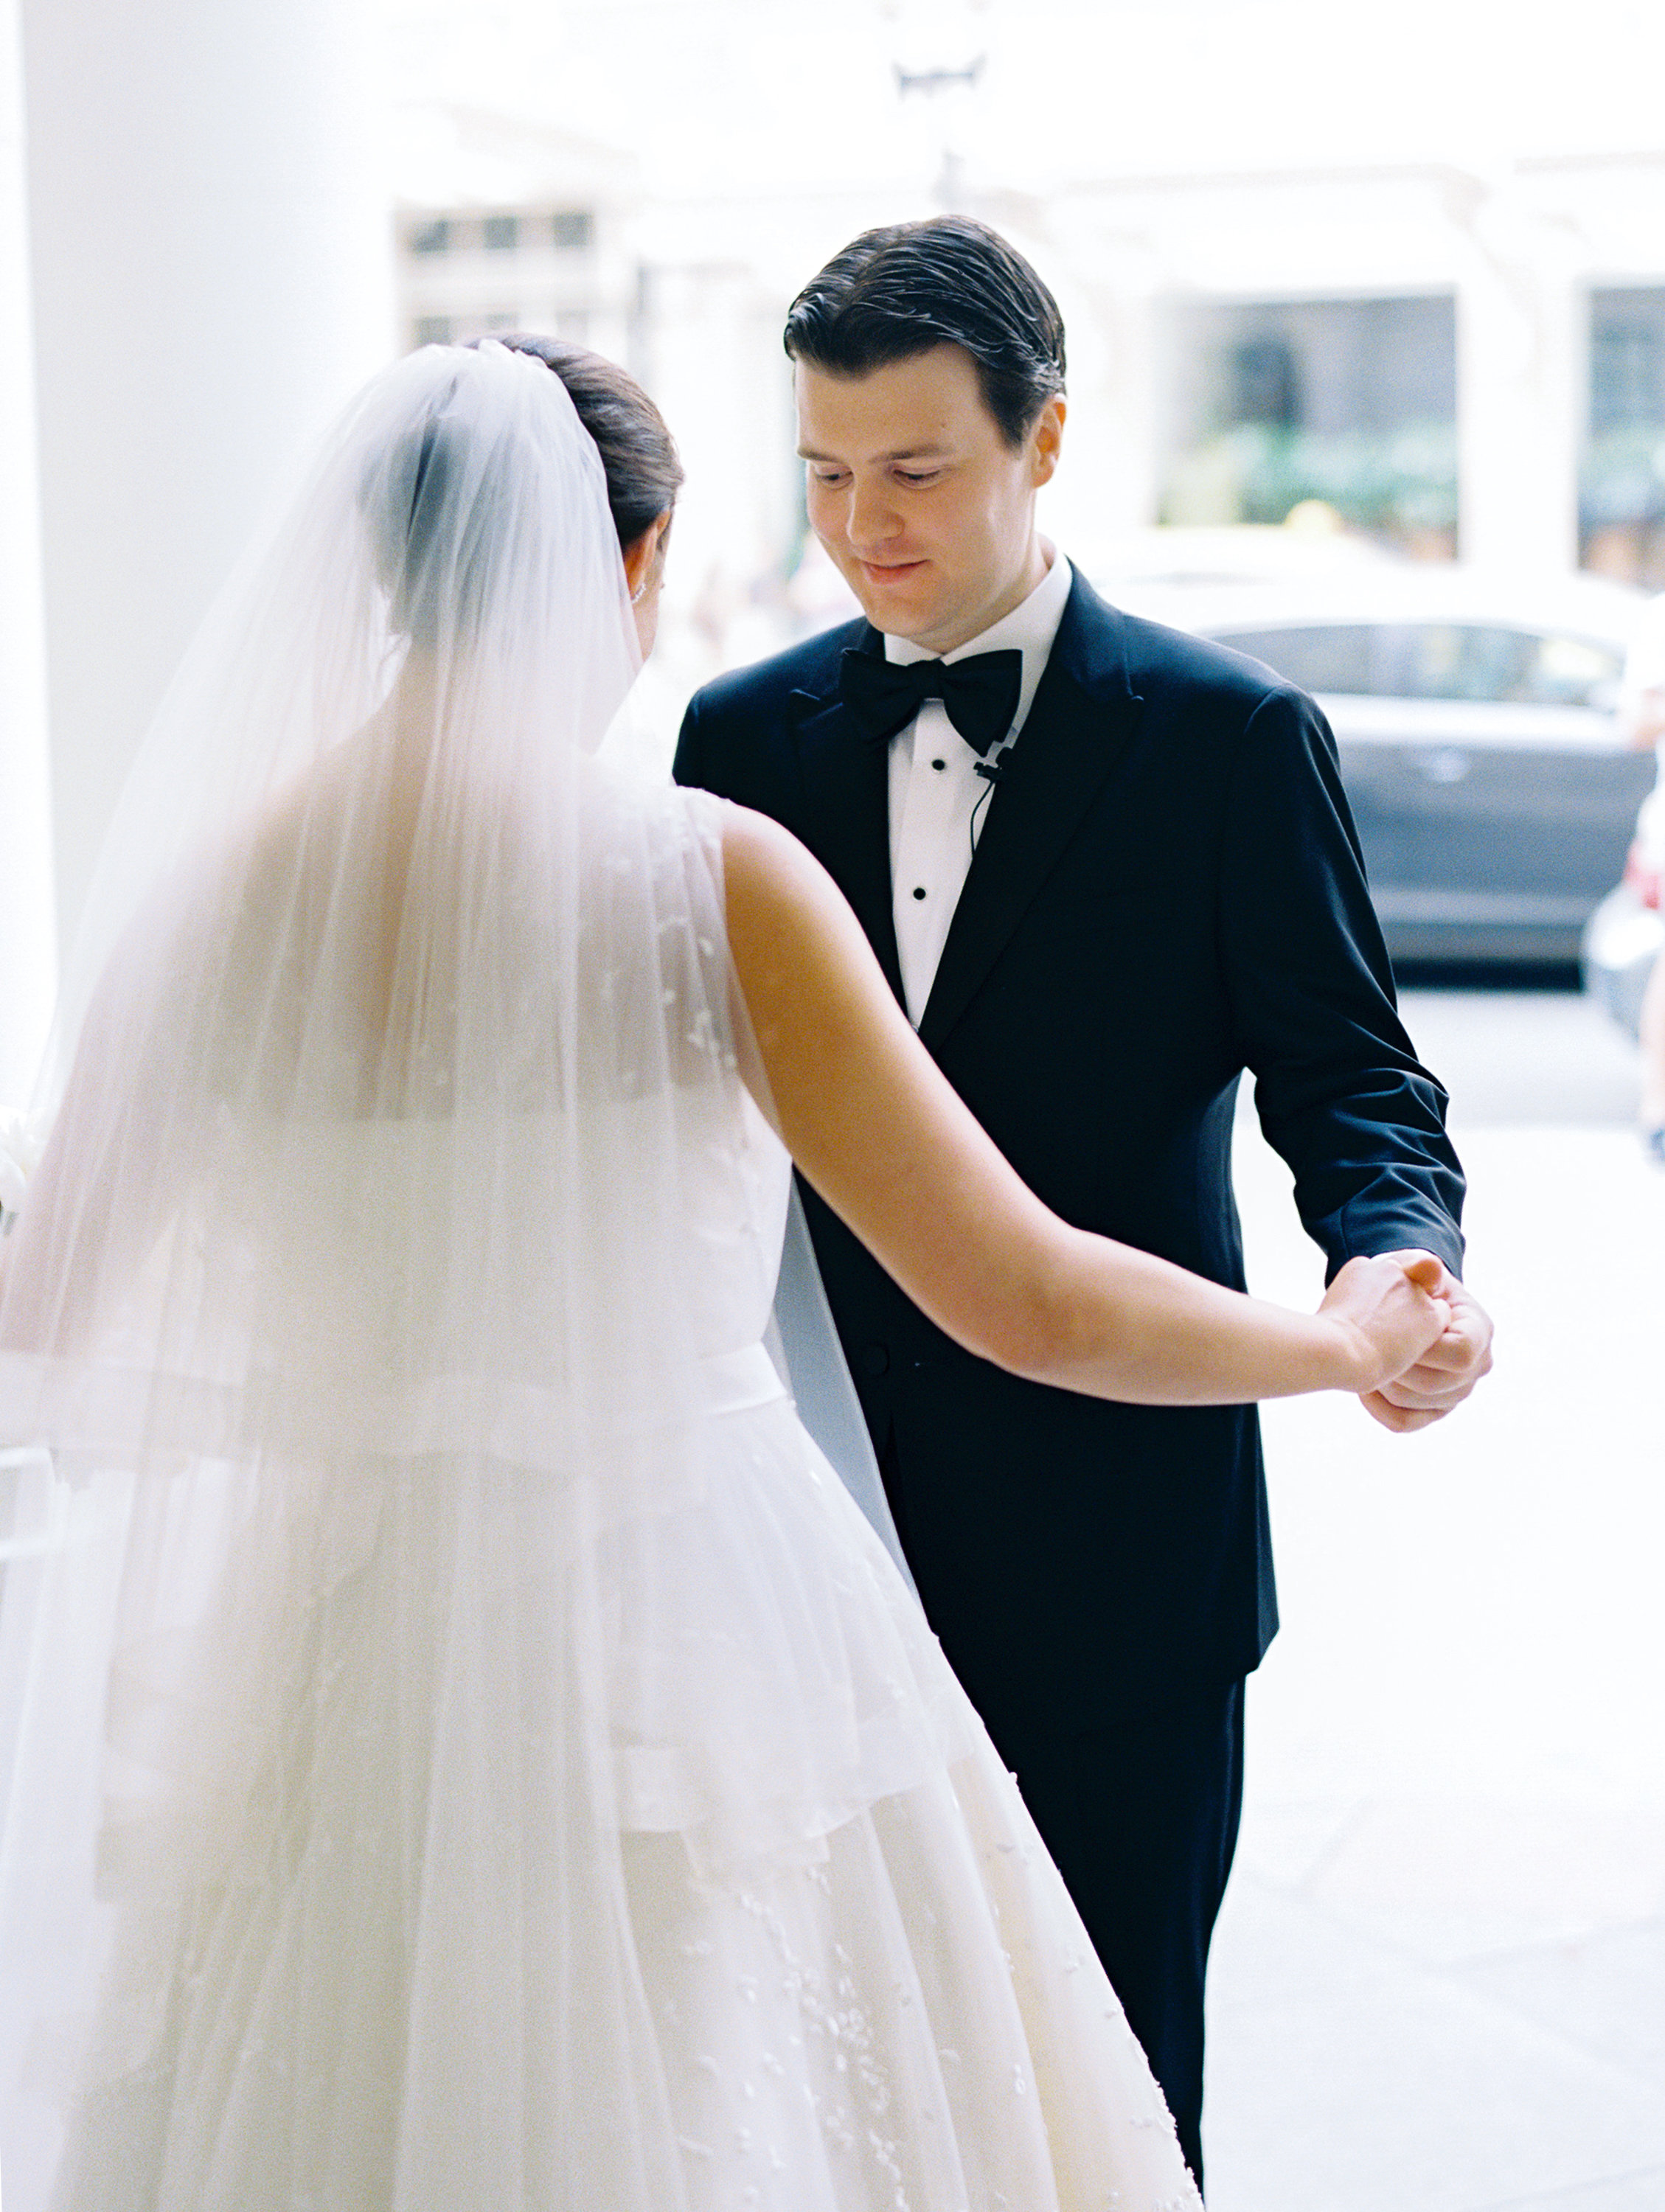 The groom enjoys the sight of his bride